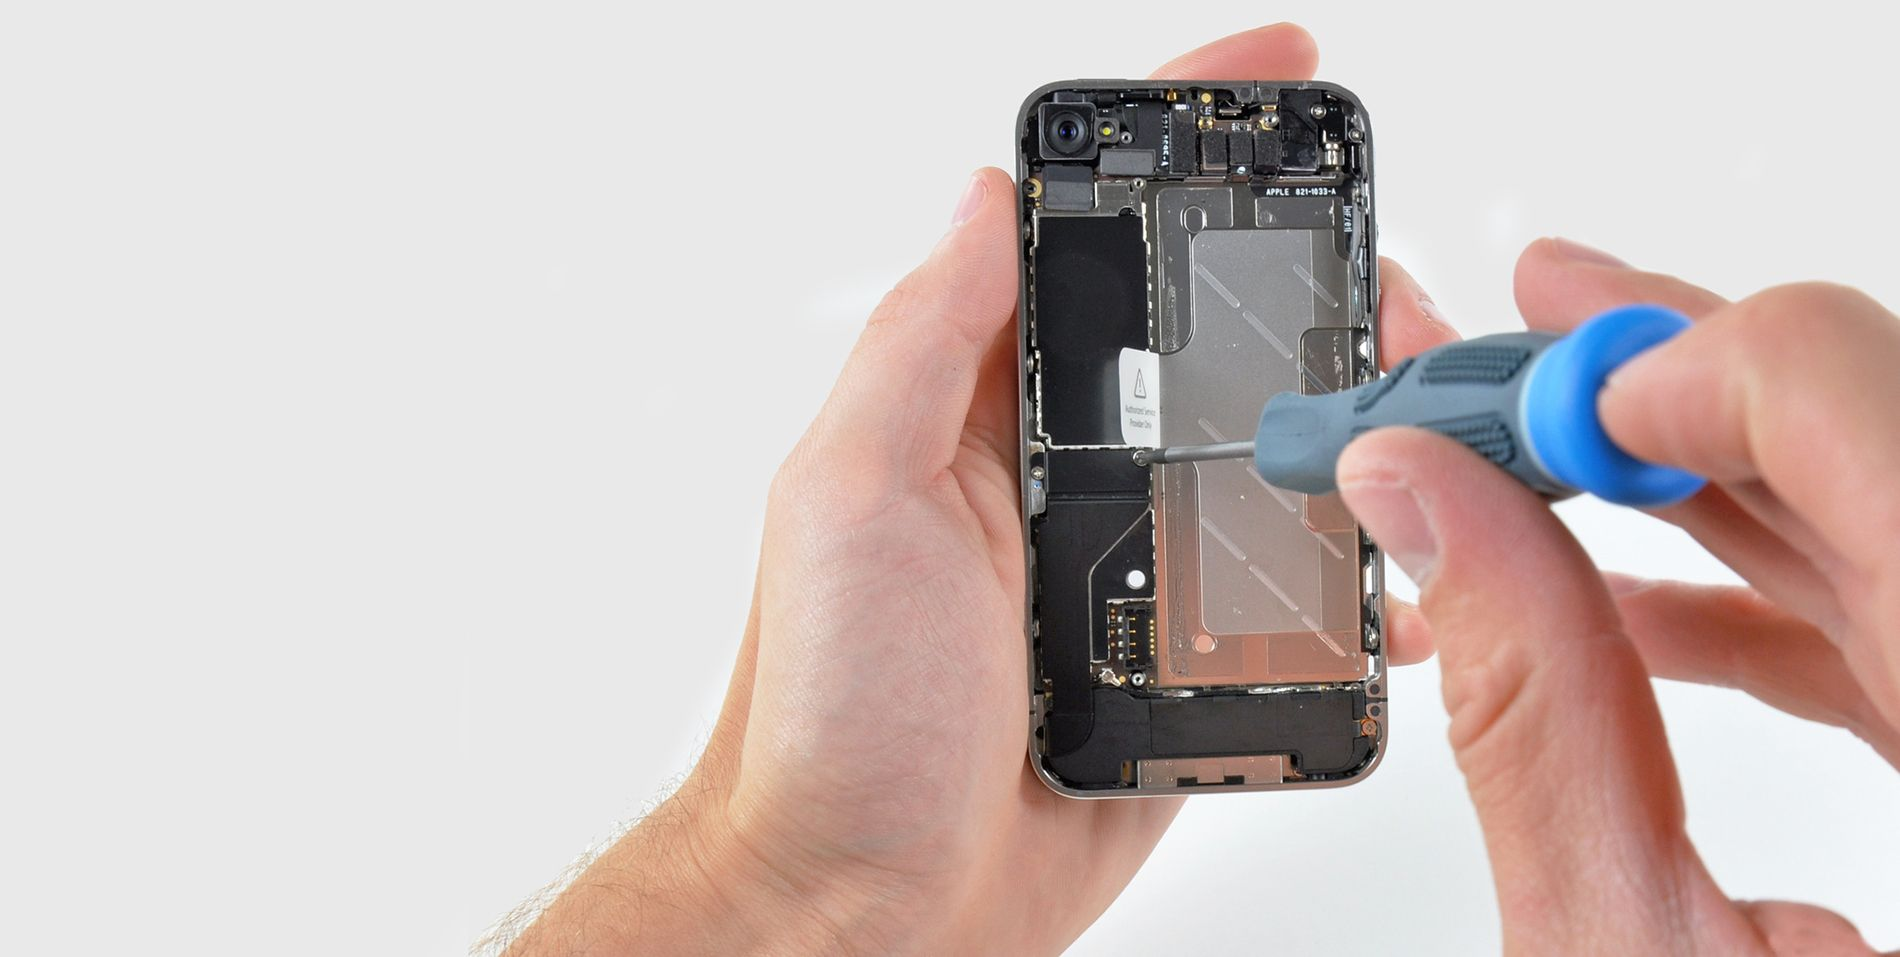 Pin by Rocket Fix on iPhone Repair Service Iphone screen